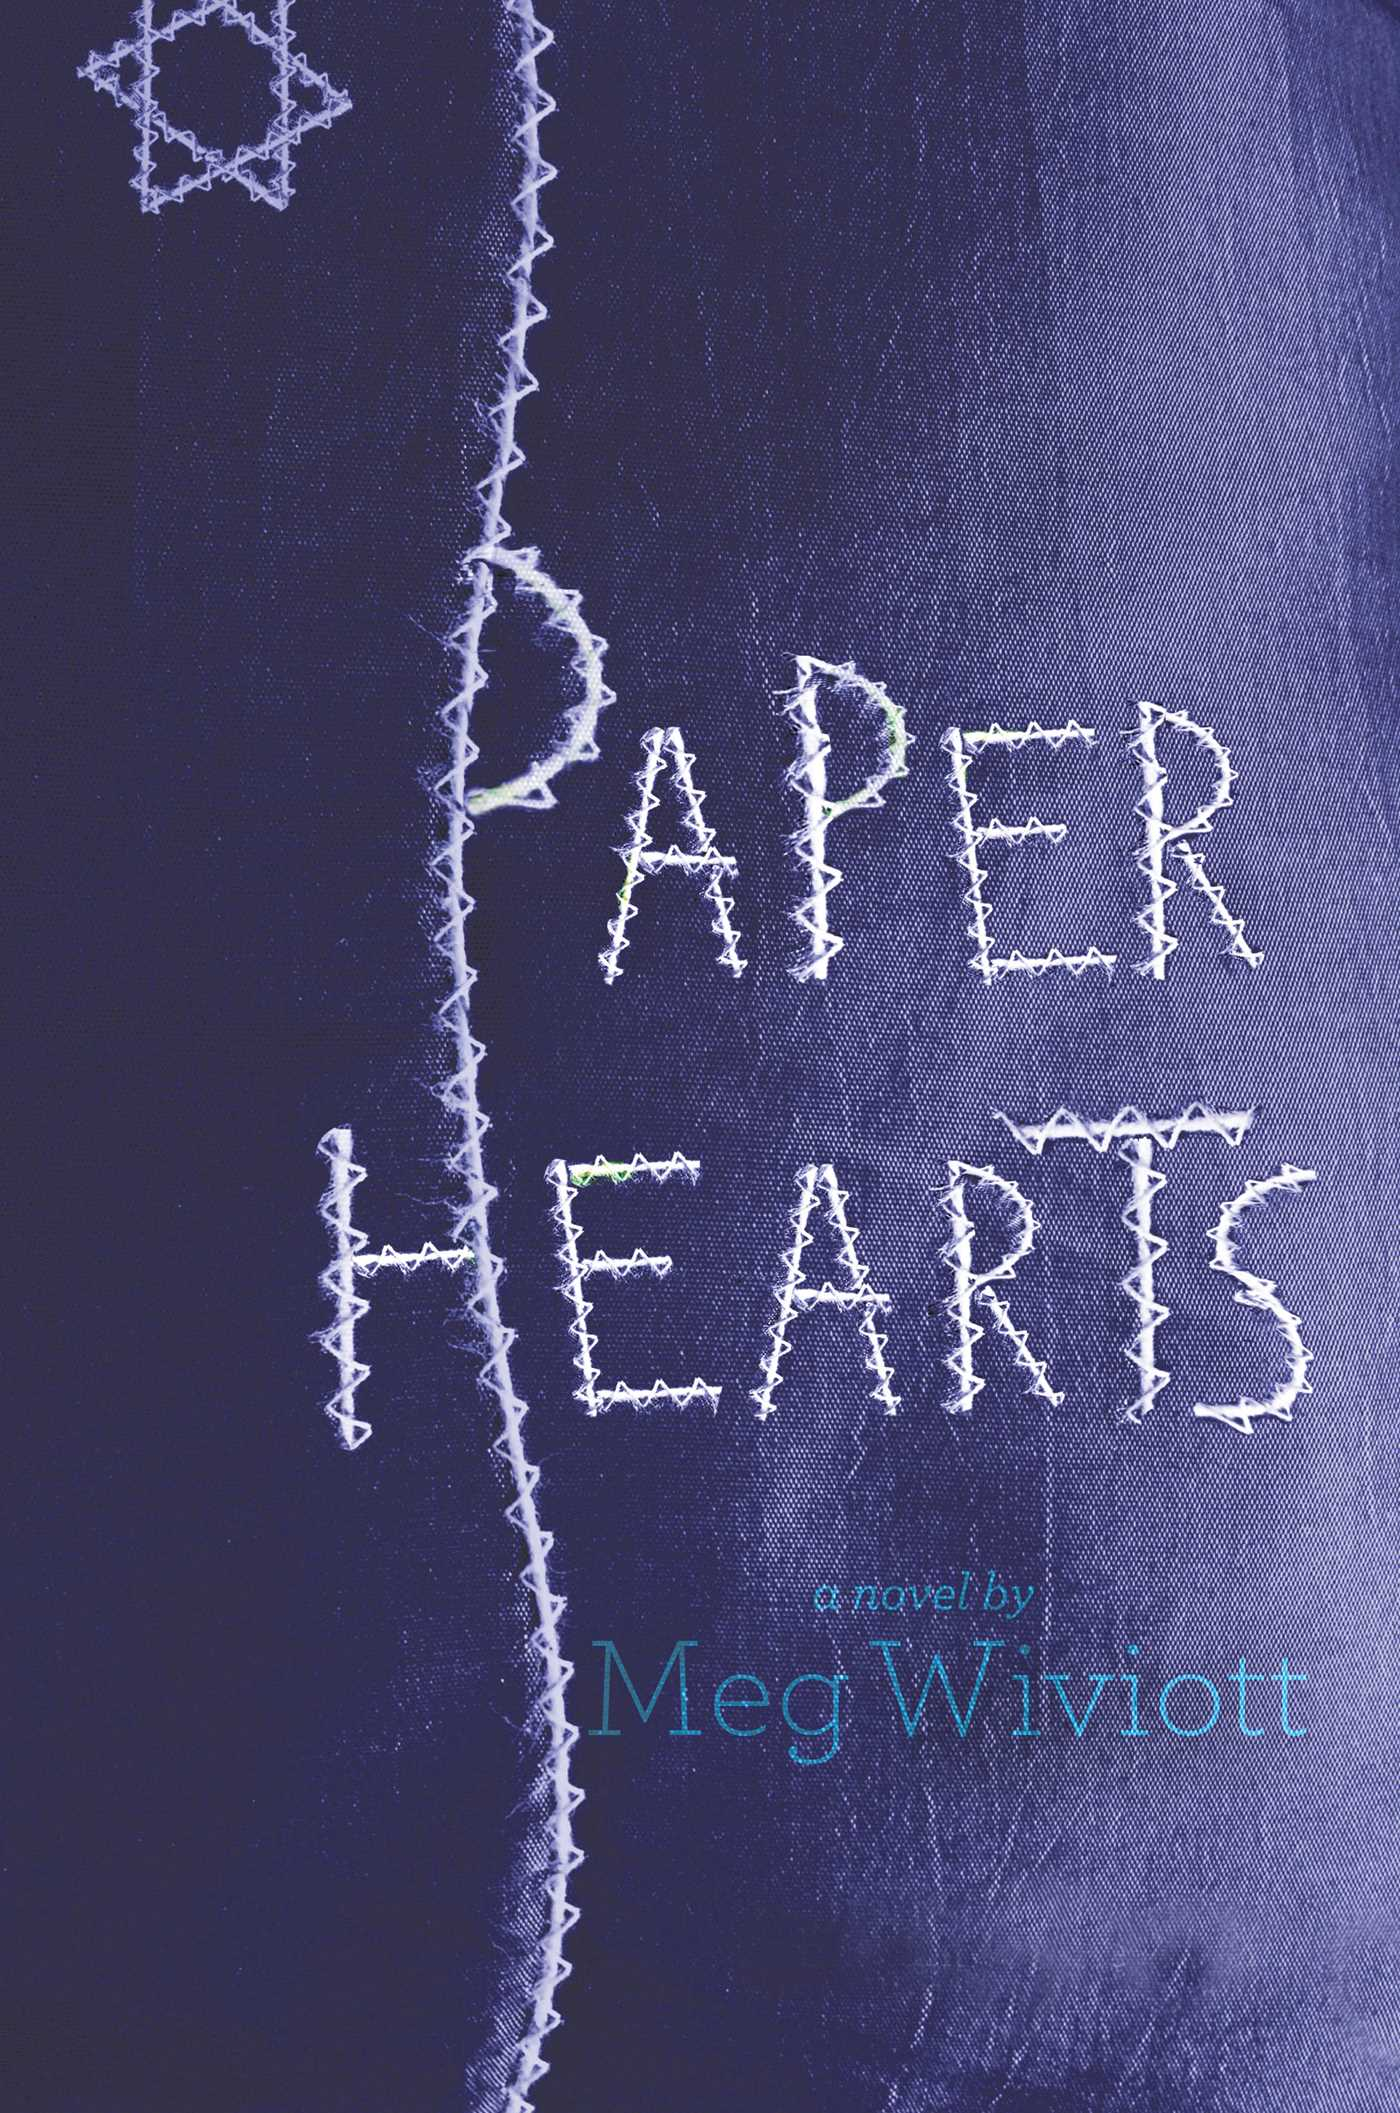 Image result for paper hearts book